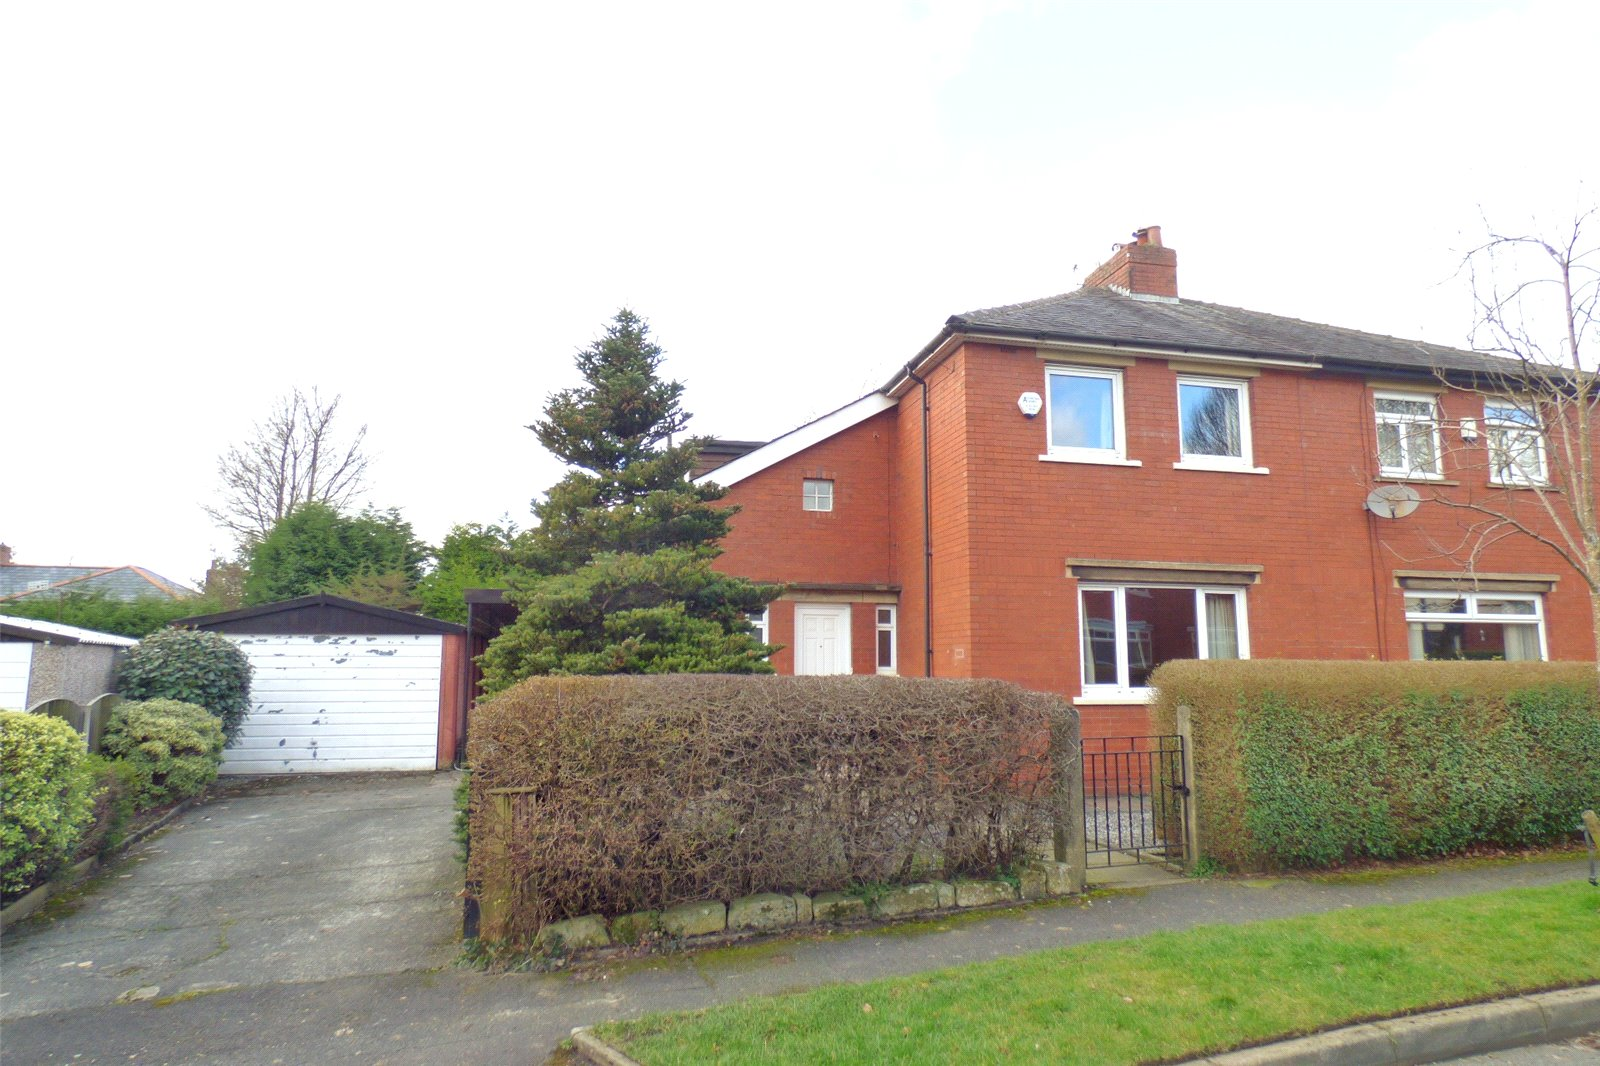 2 Bedrooms Semi Detached House for sale in Green Lane, Garden Suburb, Oldham, Greater Manchester, OL8